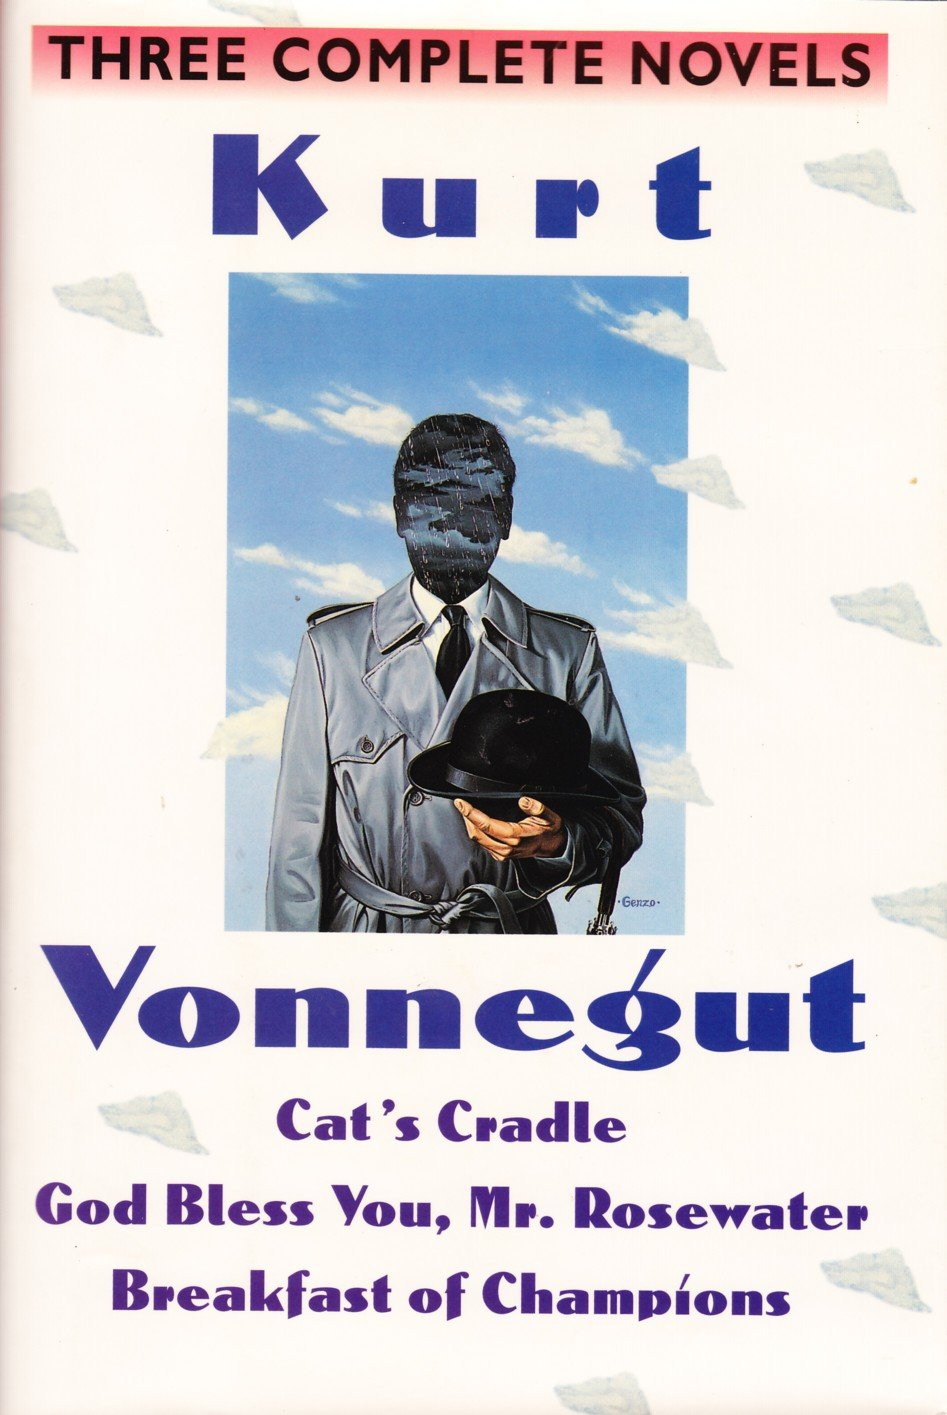 Kurt Vonnegut: Three Complete Novels: Cat's Cradle; God Bless You Mr. Rosewater; Breakfast of Champions, Vonnegut, Kurt